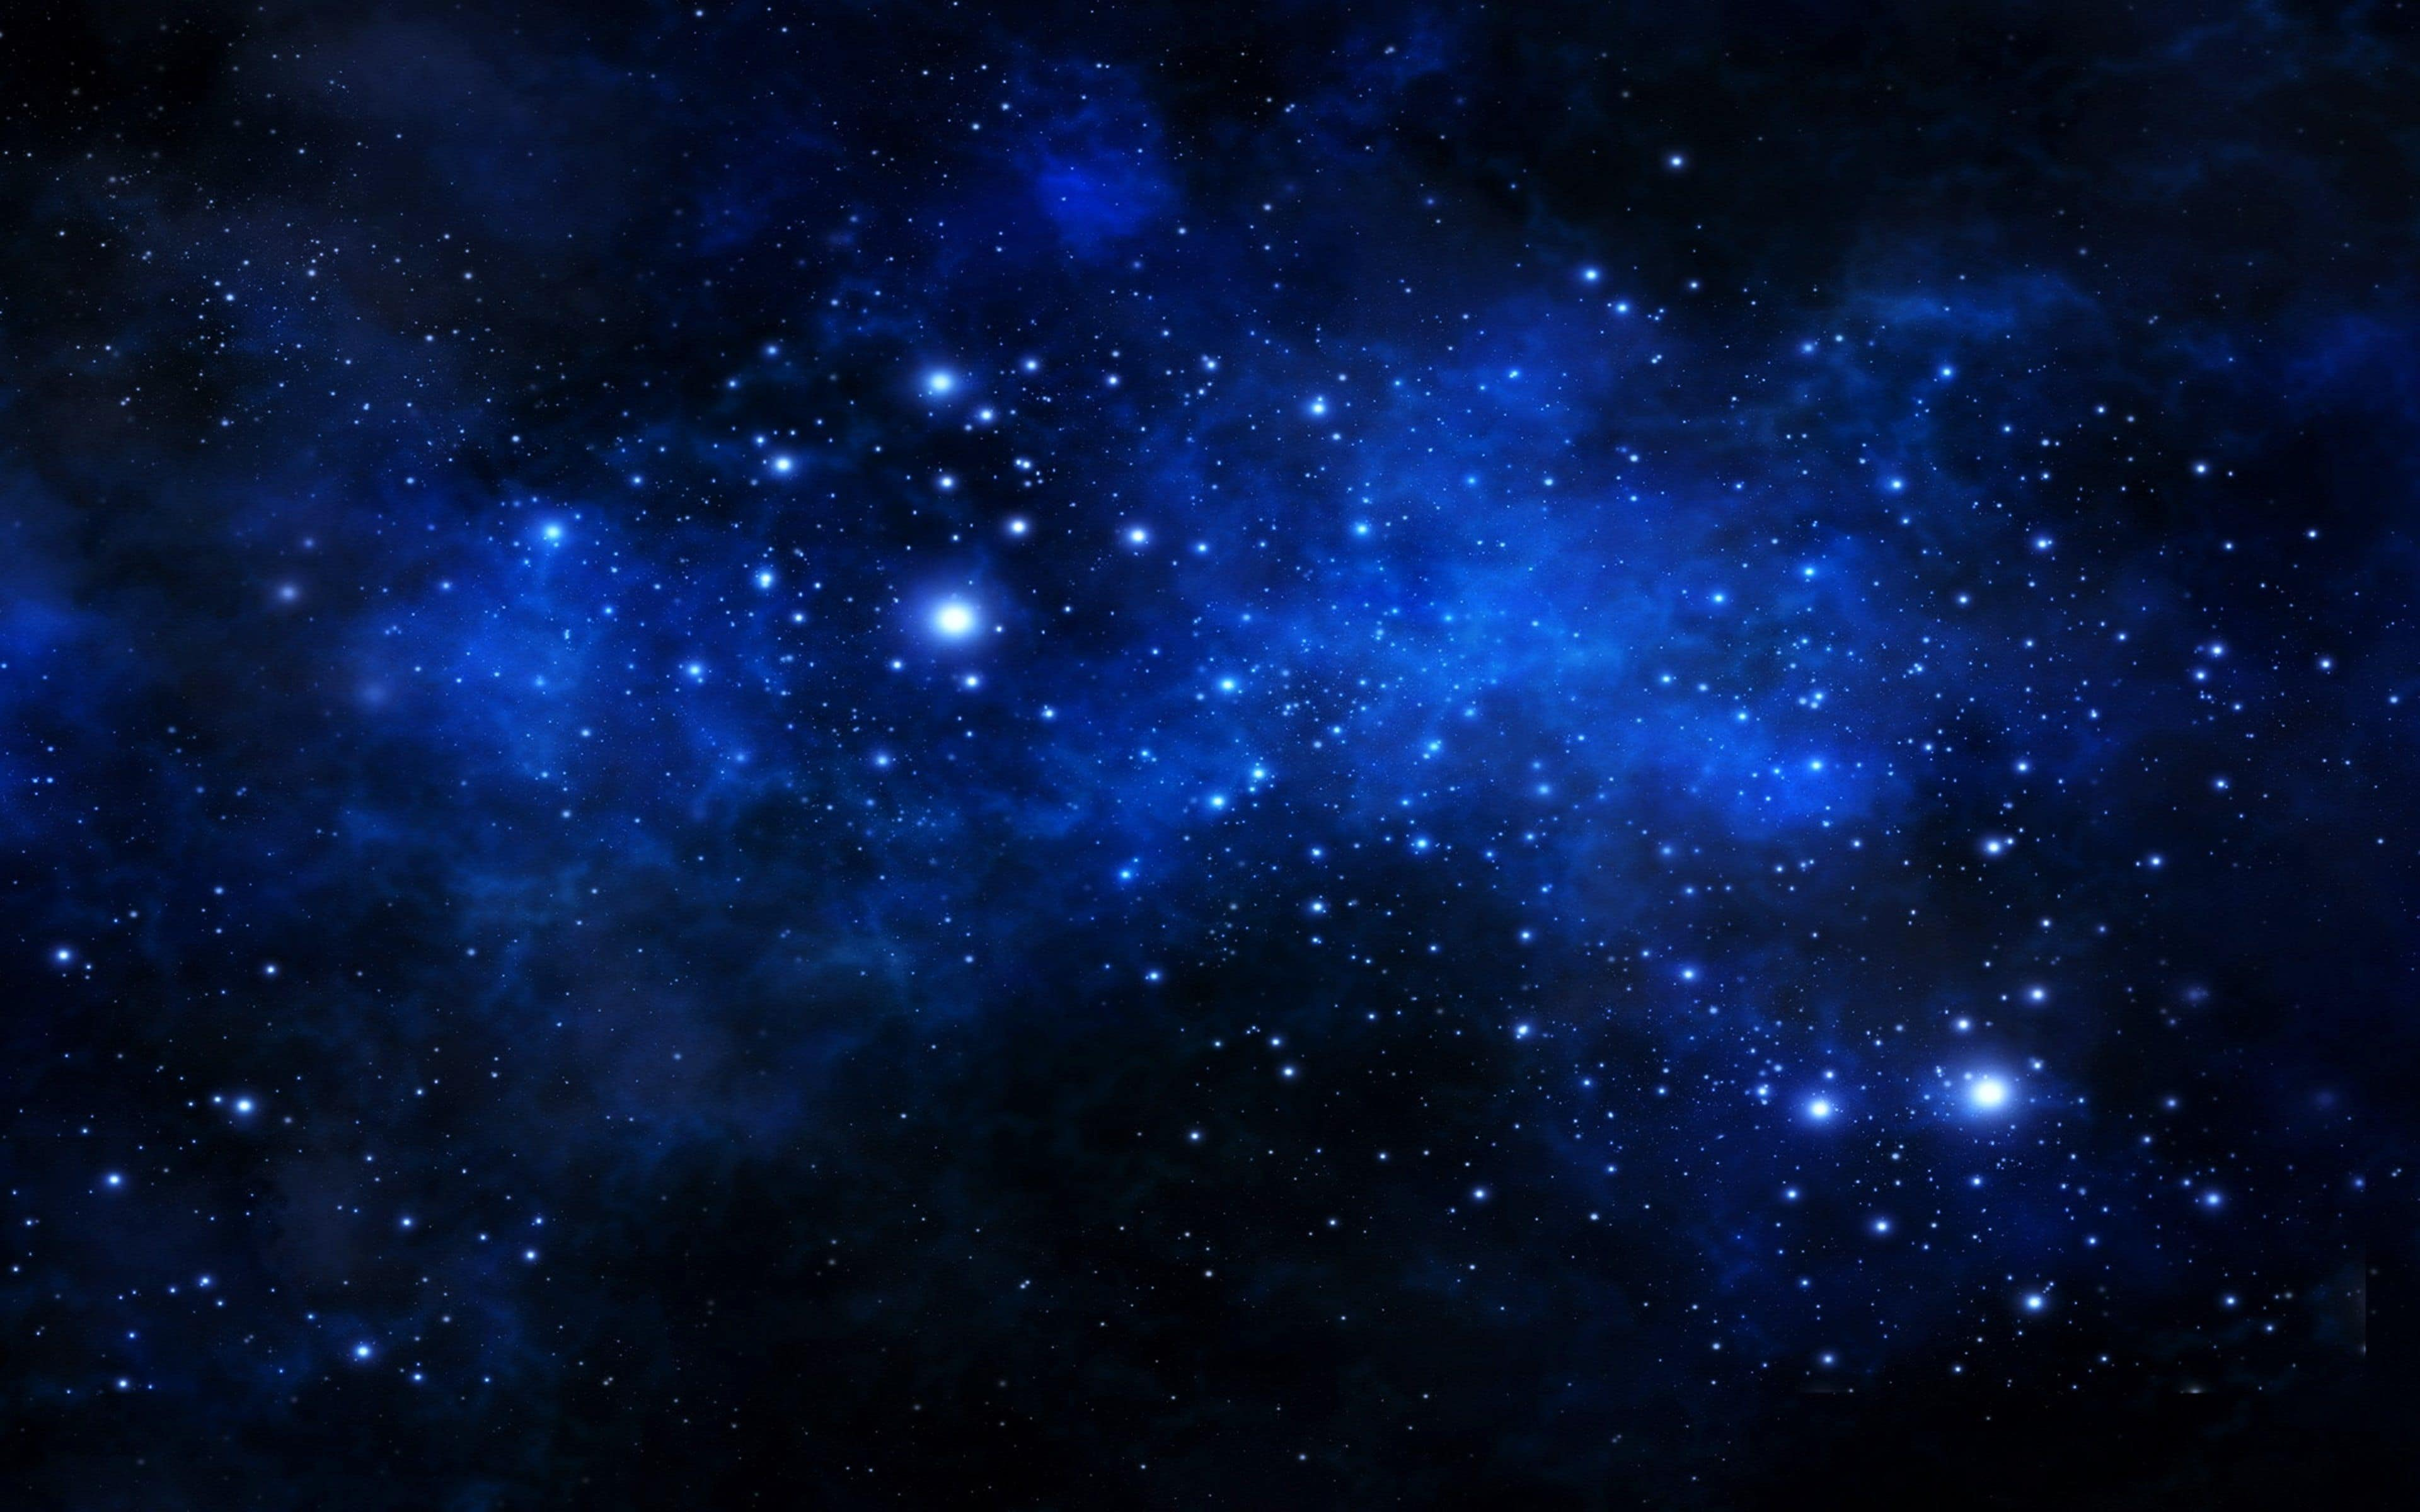 Triangle galaxy wallpaper Gallery 68 Plus PIC WPT4067